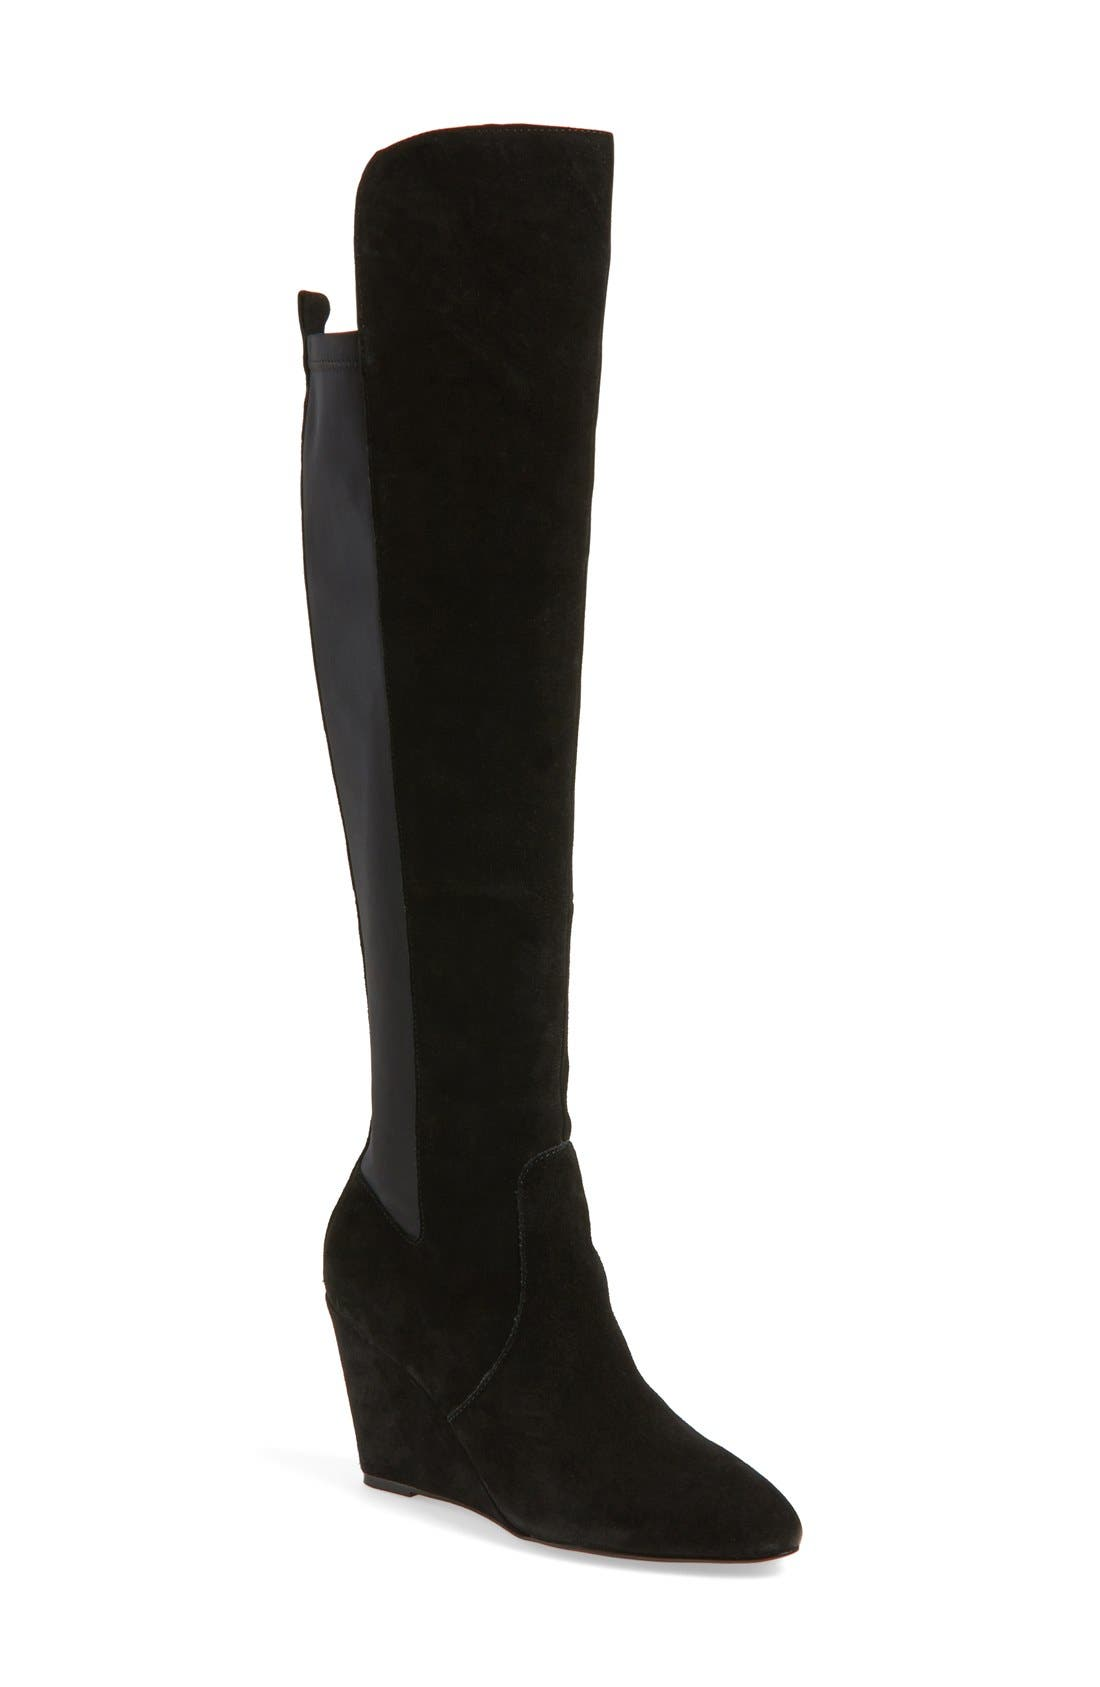 CHARLES BY CHARLES DAVID 'Edie' Over the Knee Boot, Main, color, 002